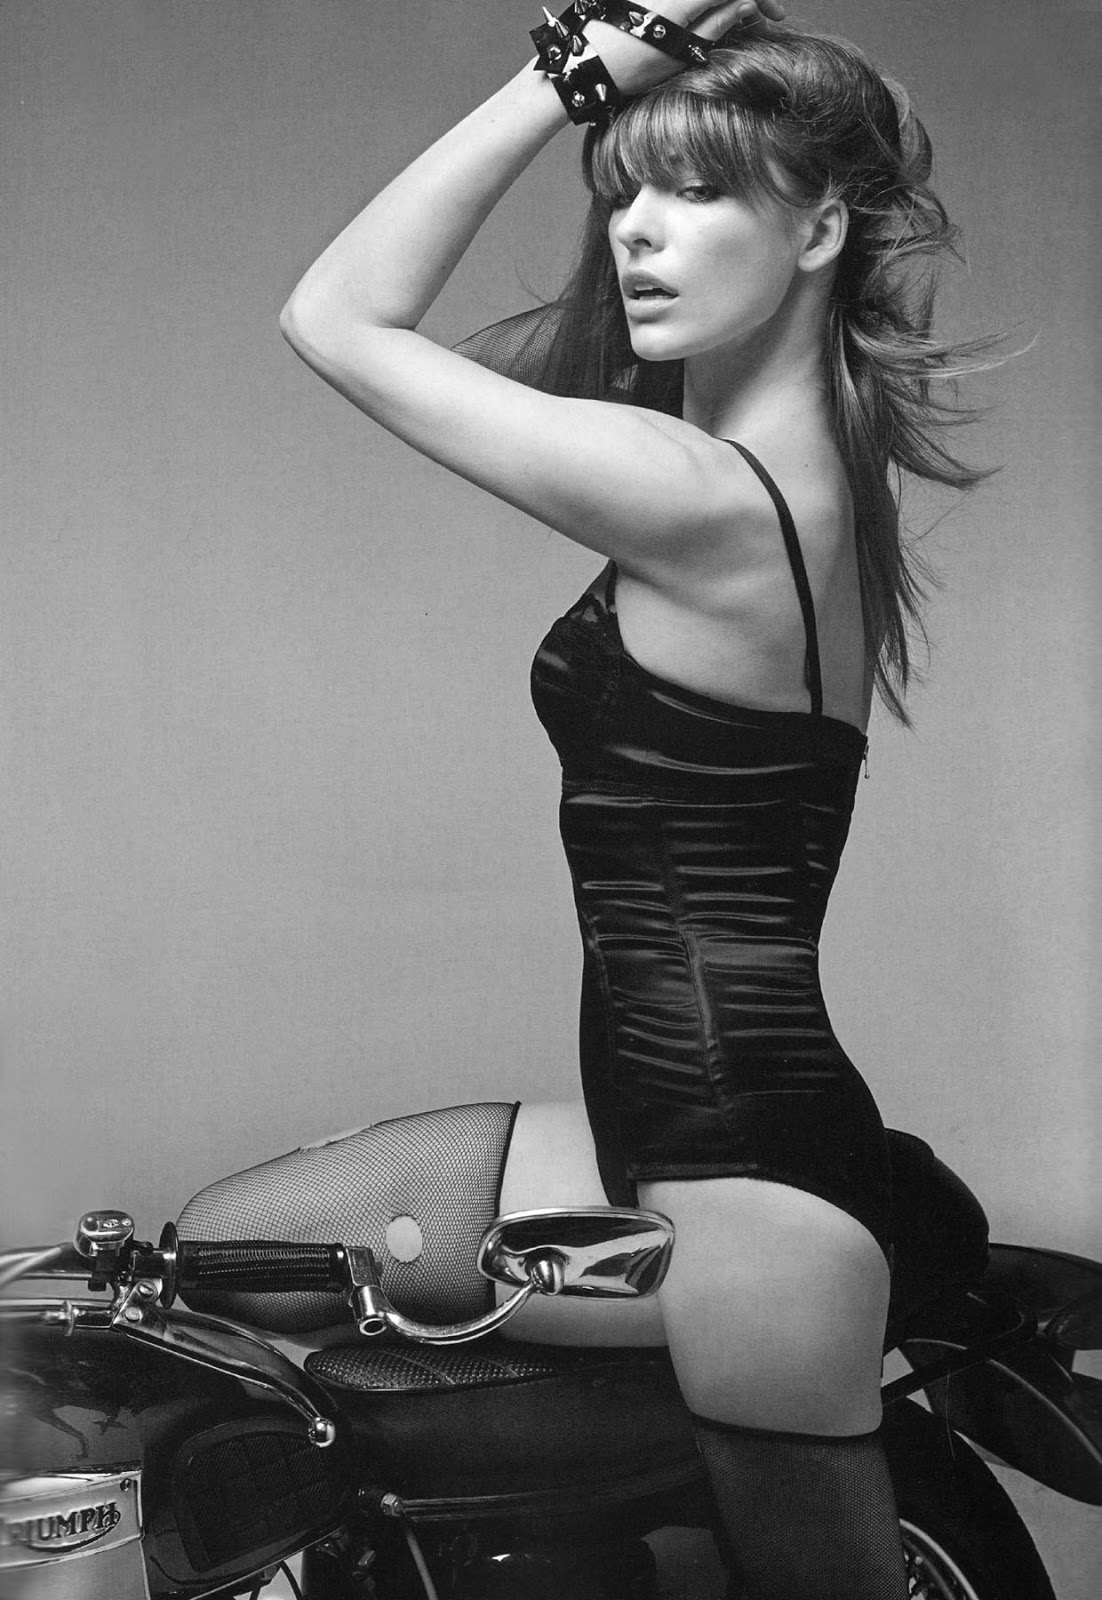 Mila Jovovich Triumph Motorcycle Pin Up